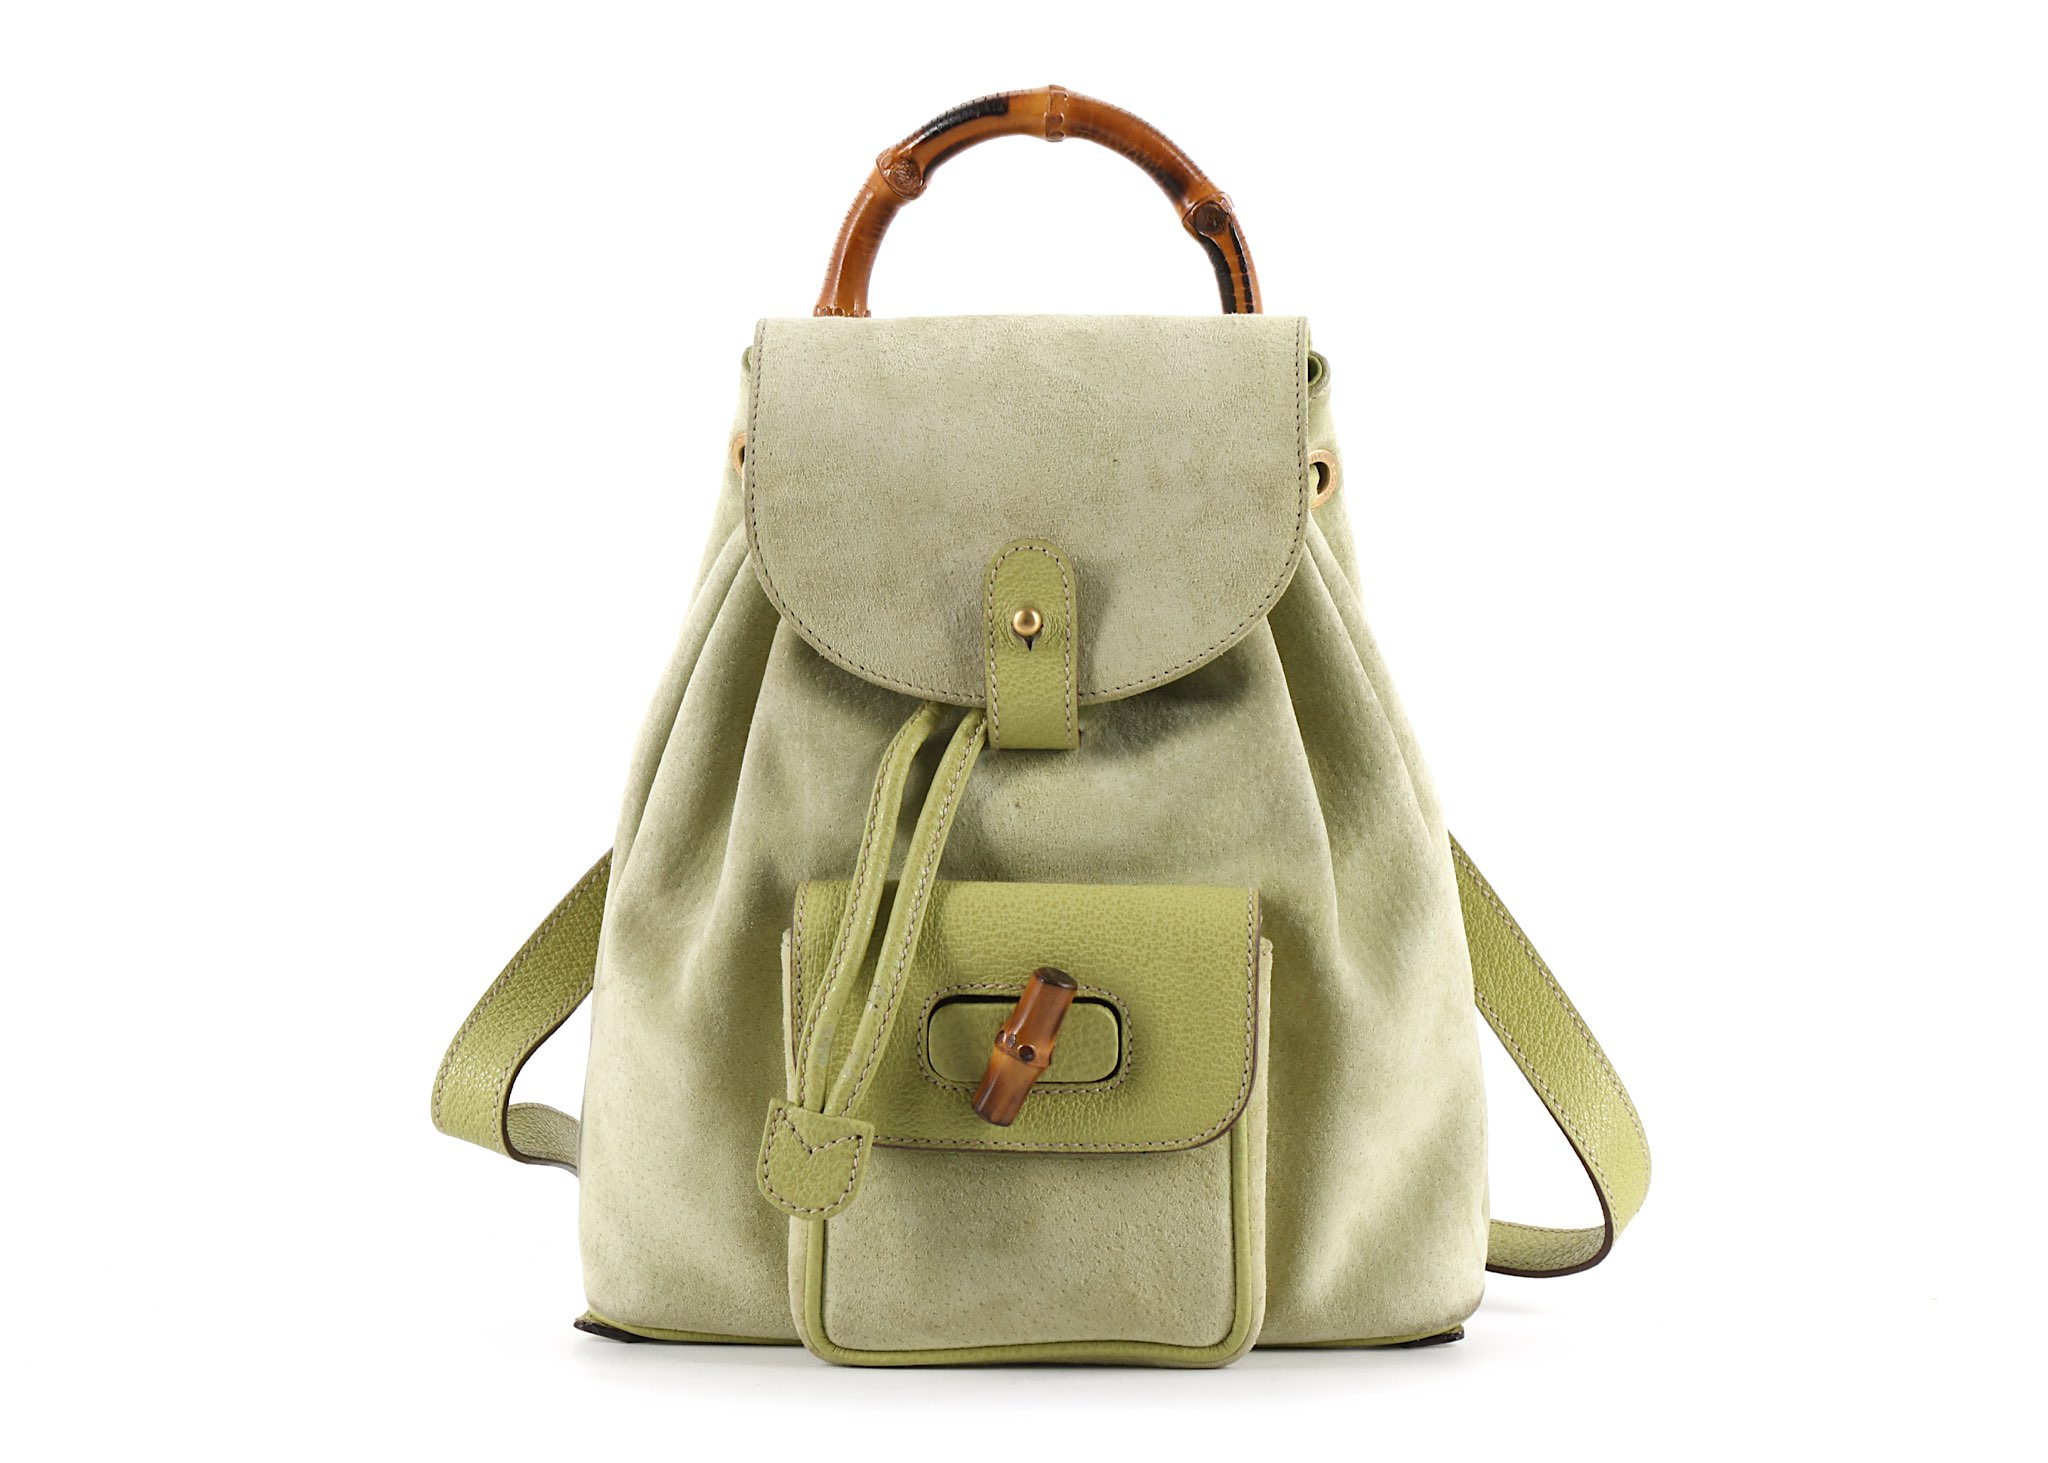 20a0fc02d73f3c Gucci Green Small Suede Bamboo Backpack, 1990s, suede body with ...